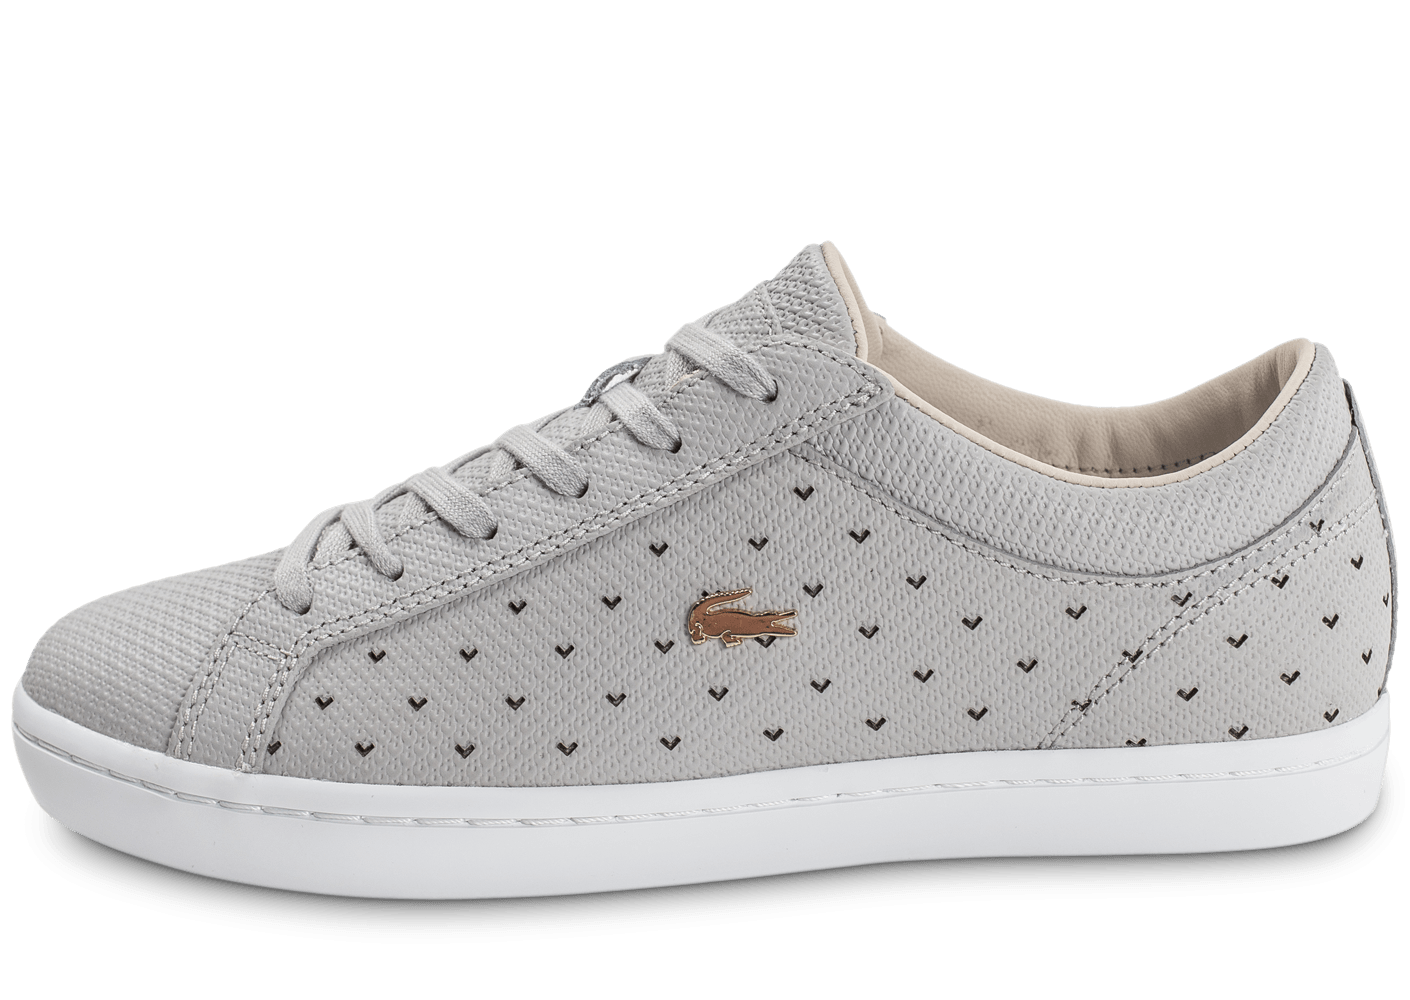 836a0406b0 chaussure lacoste femme grise